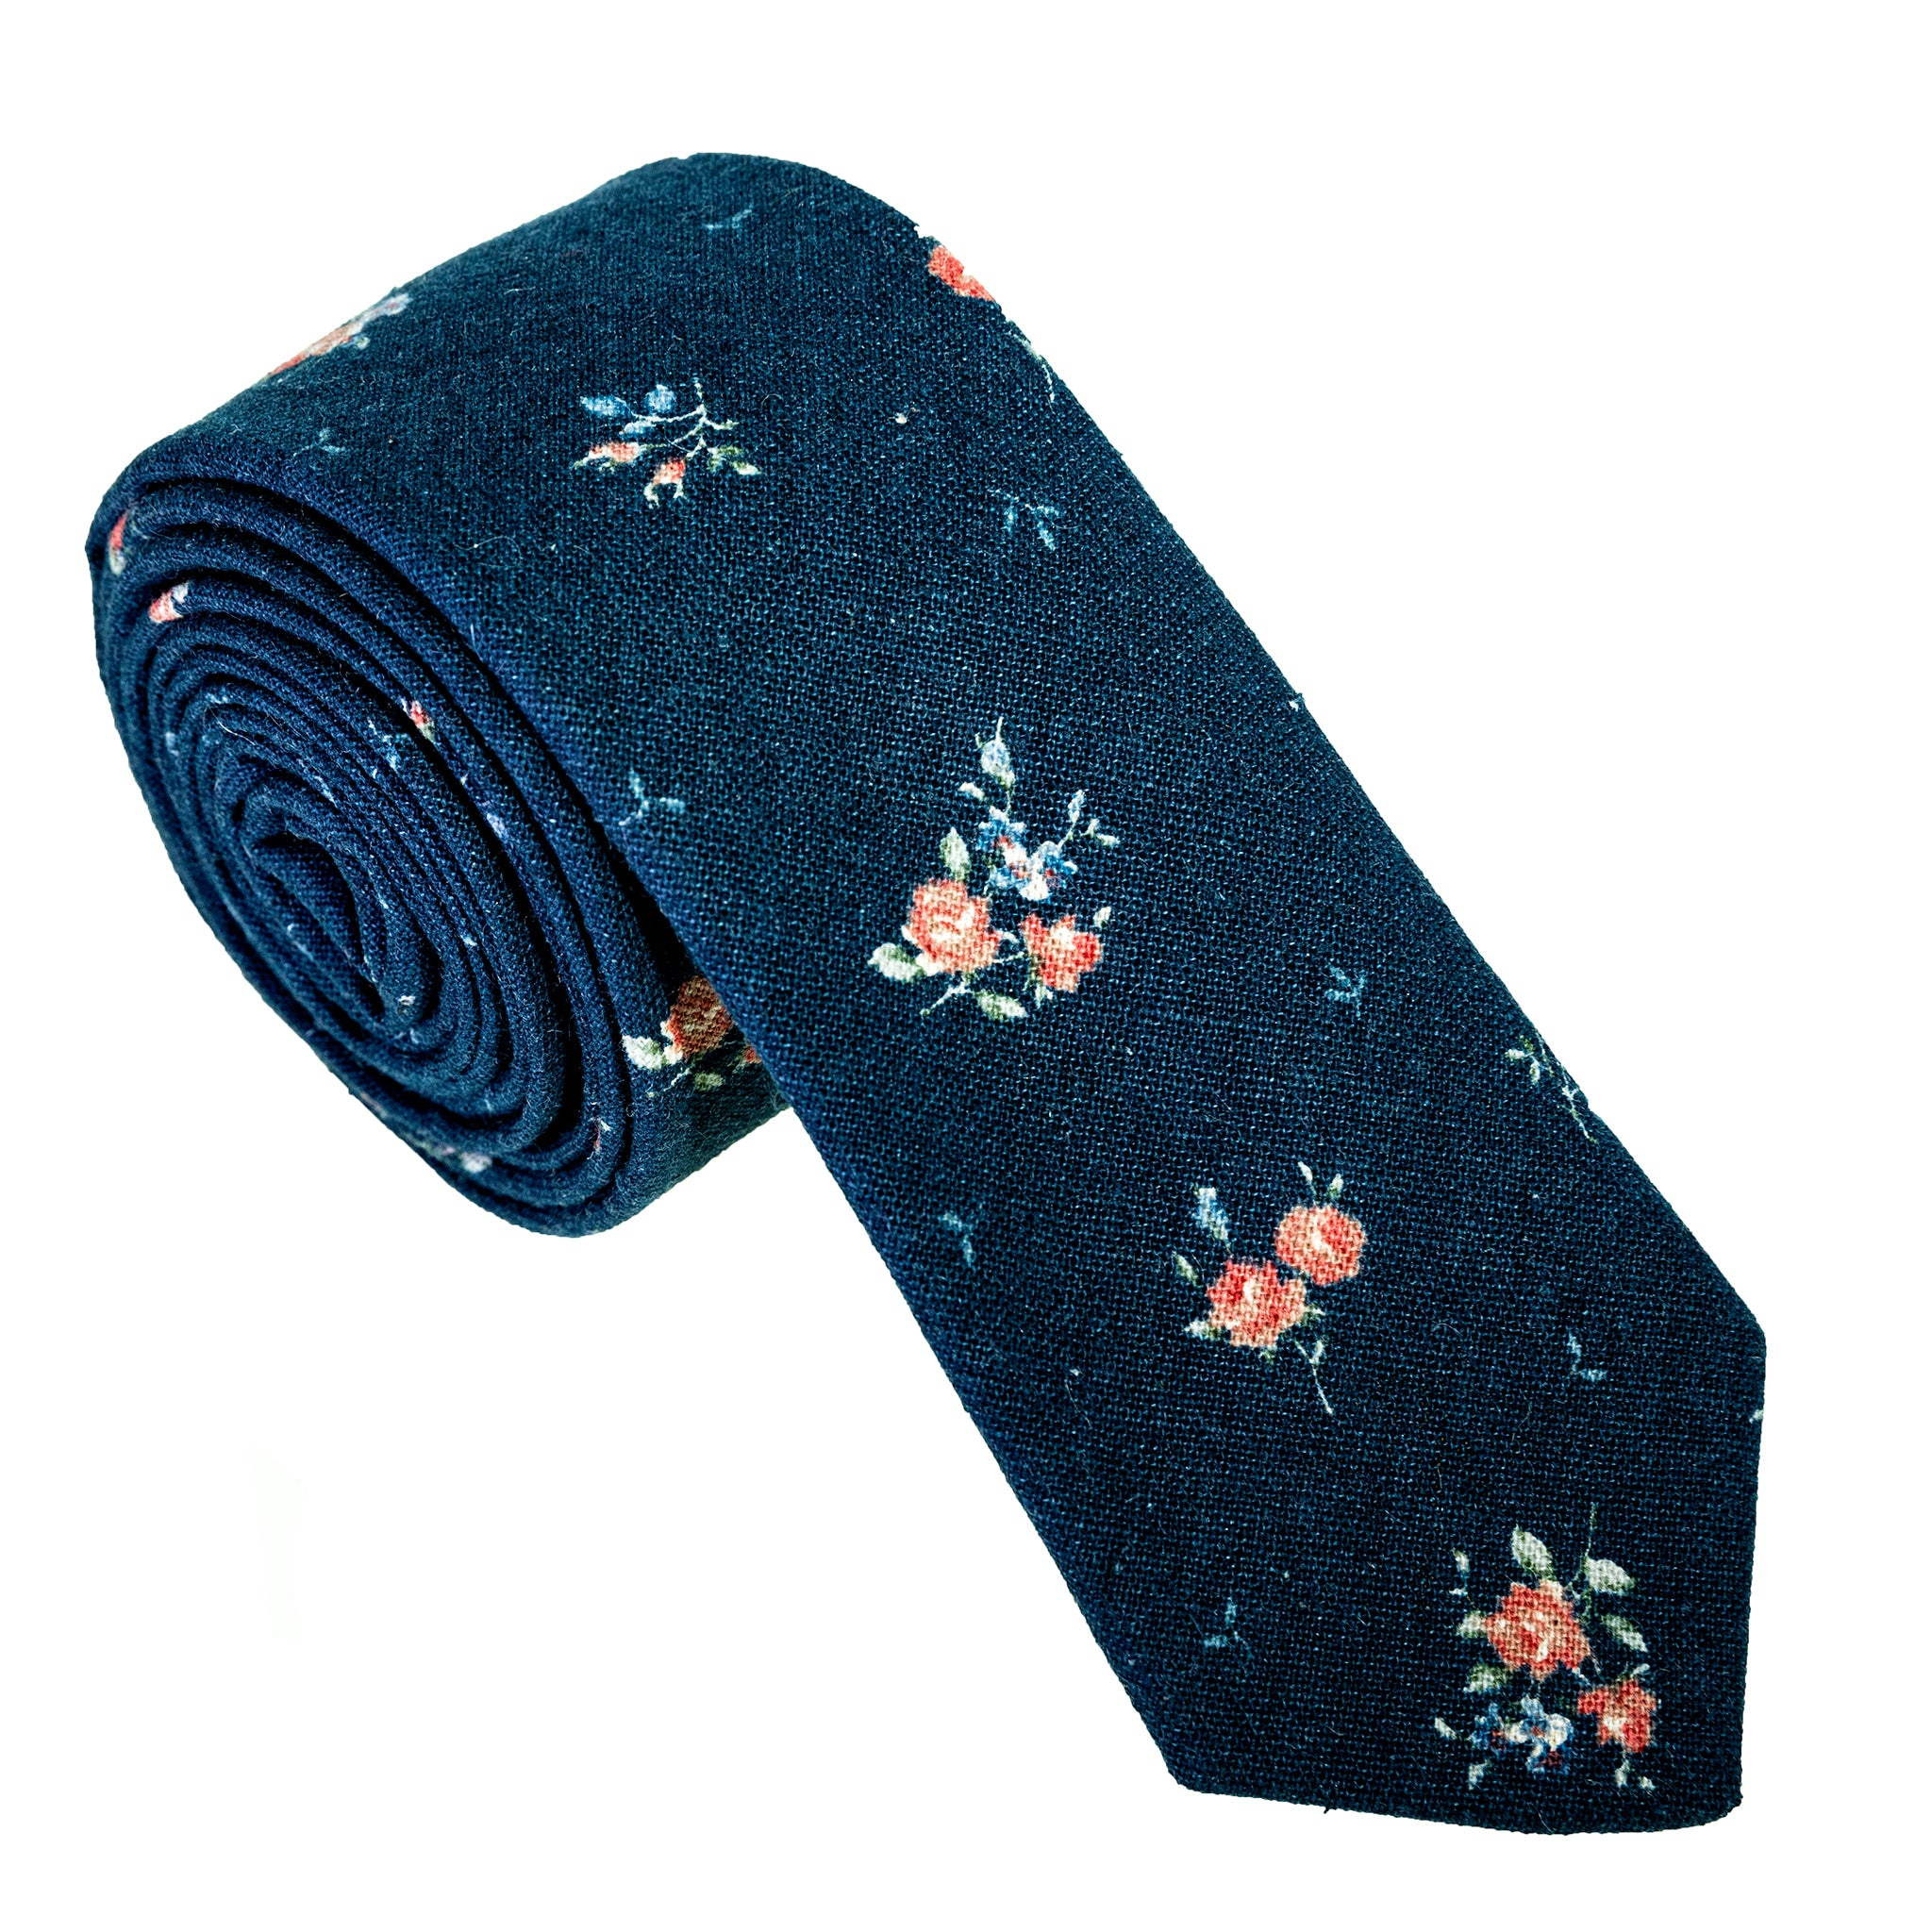 Japanese Floral Print on Navy Necktie